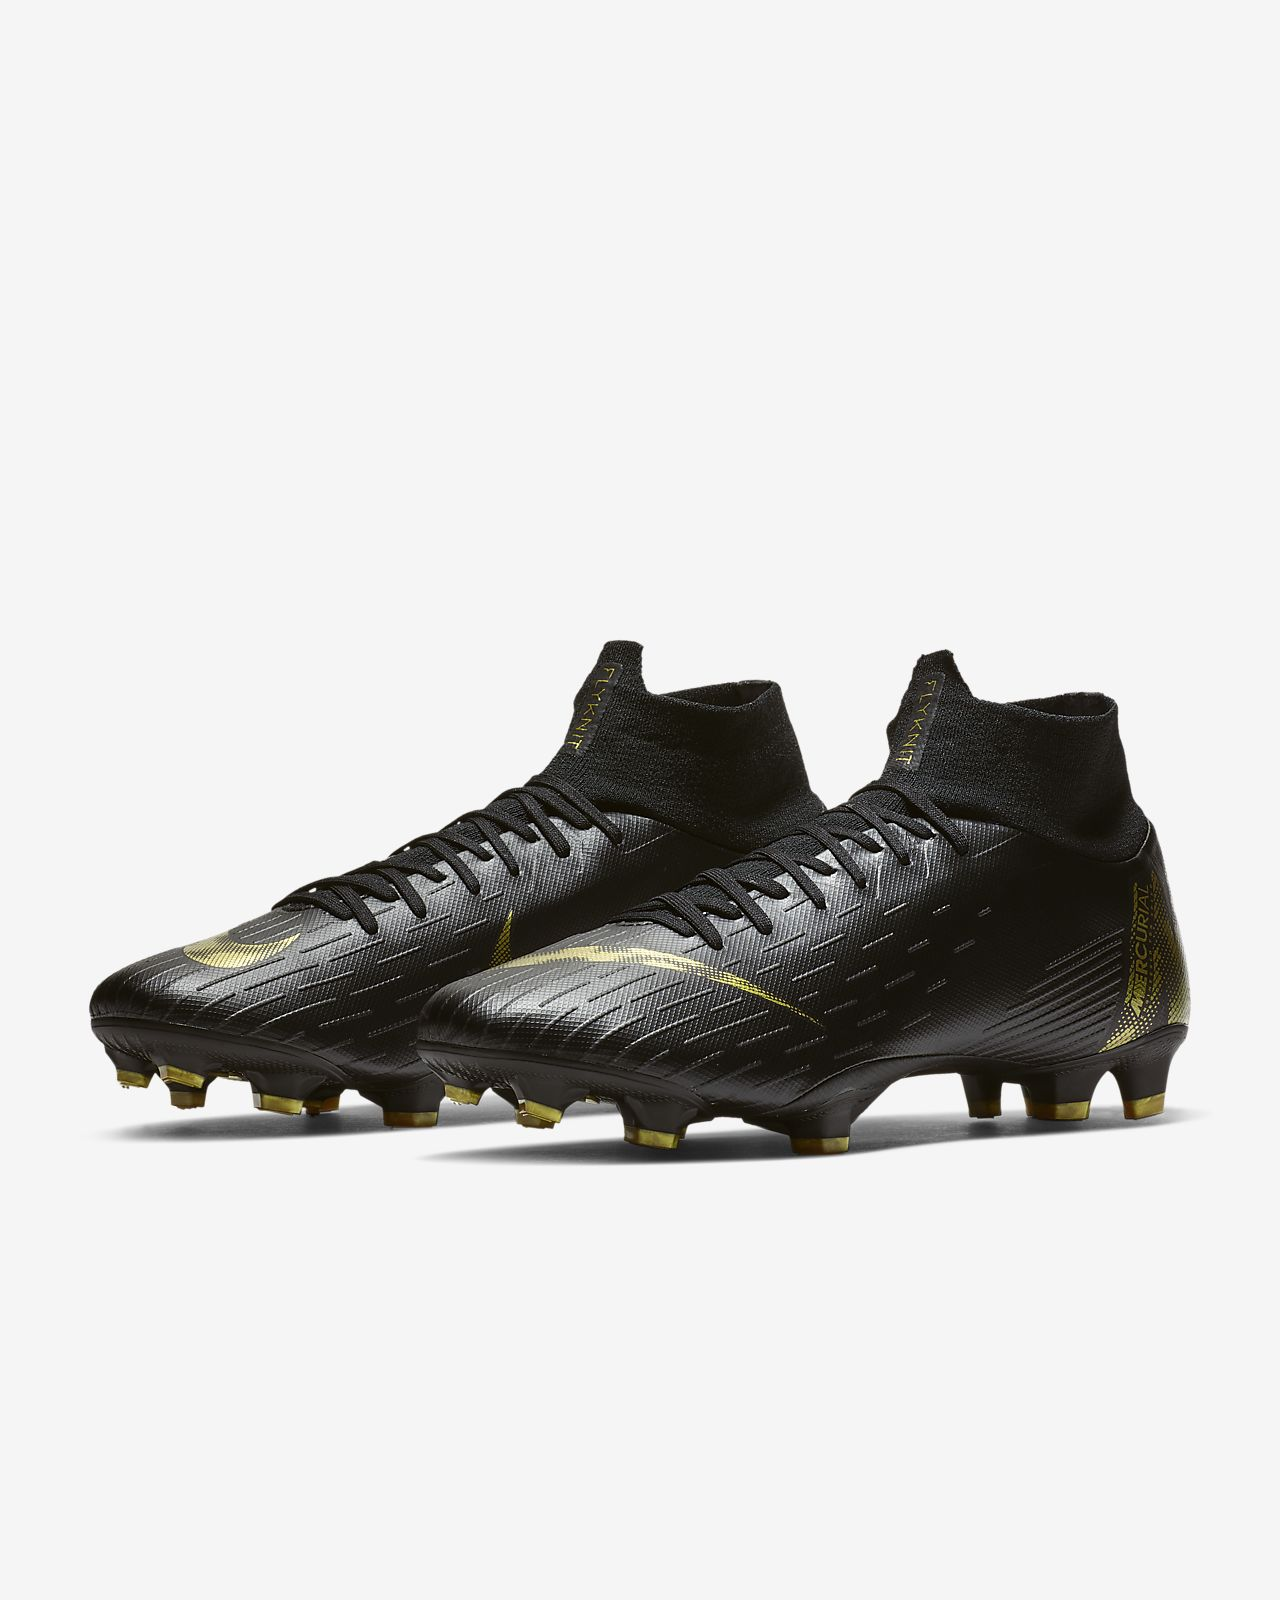 0aabeb3ea Nike Superfly 6 Pro FG Firm-Ground Football Boot. Nike.com CA